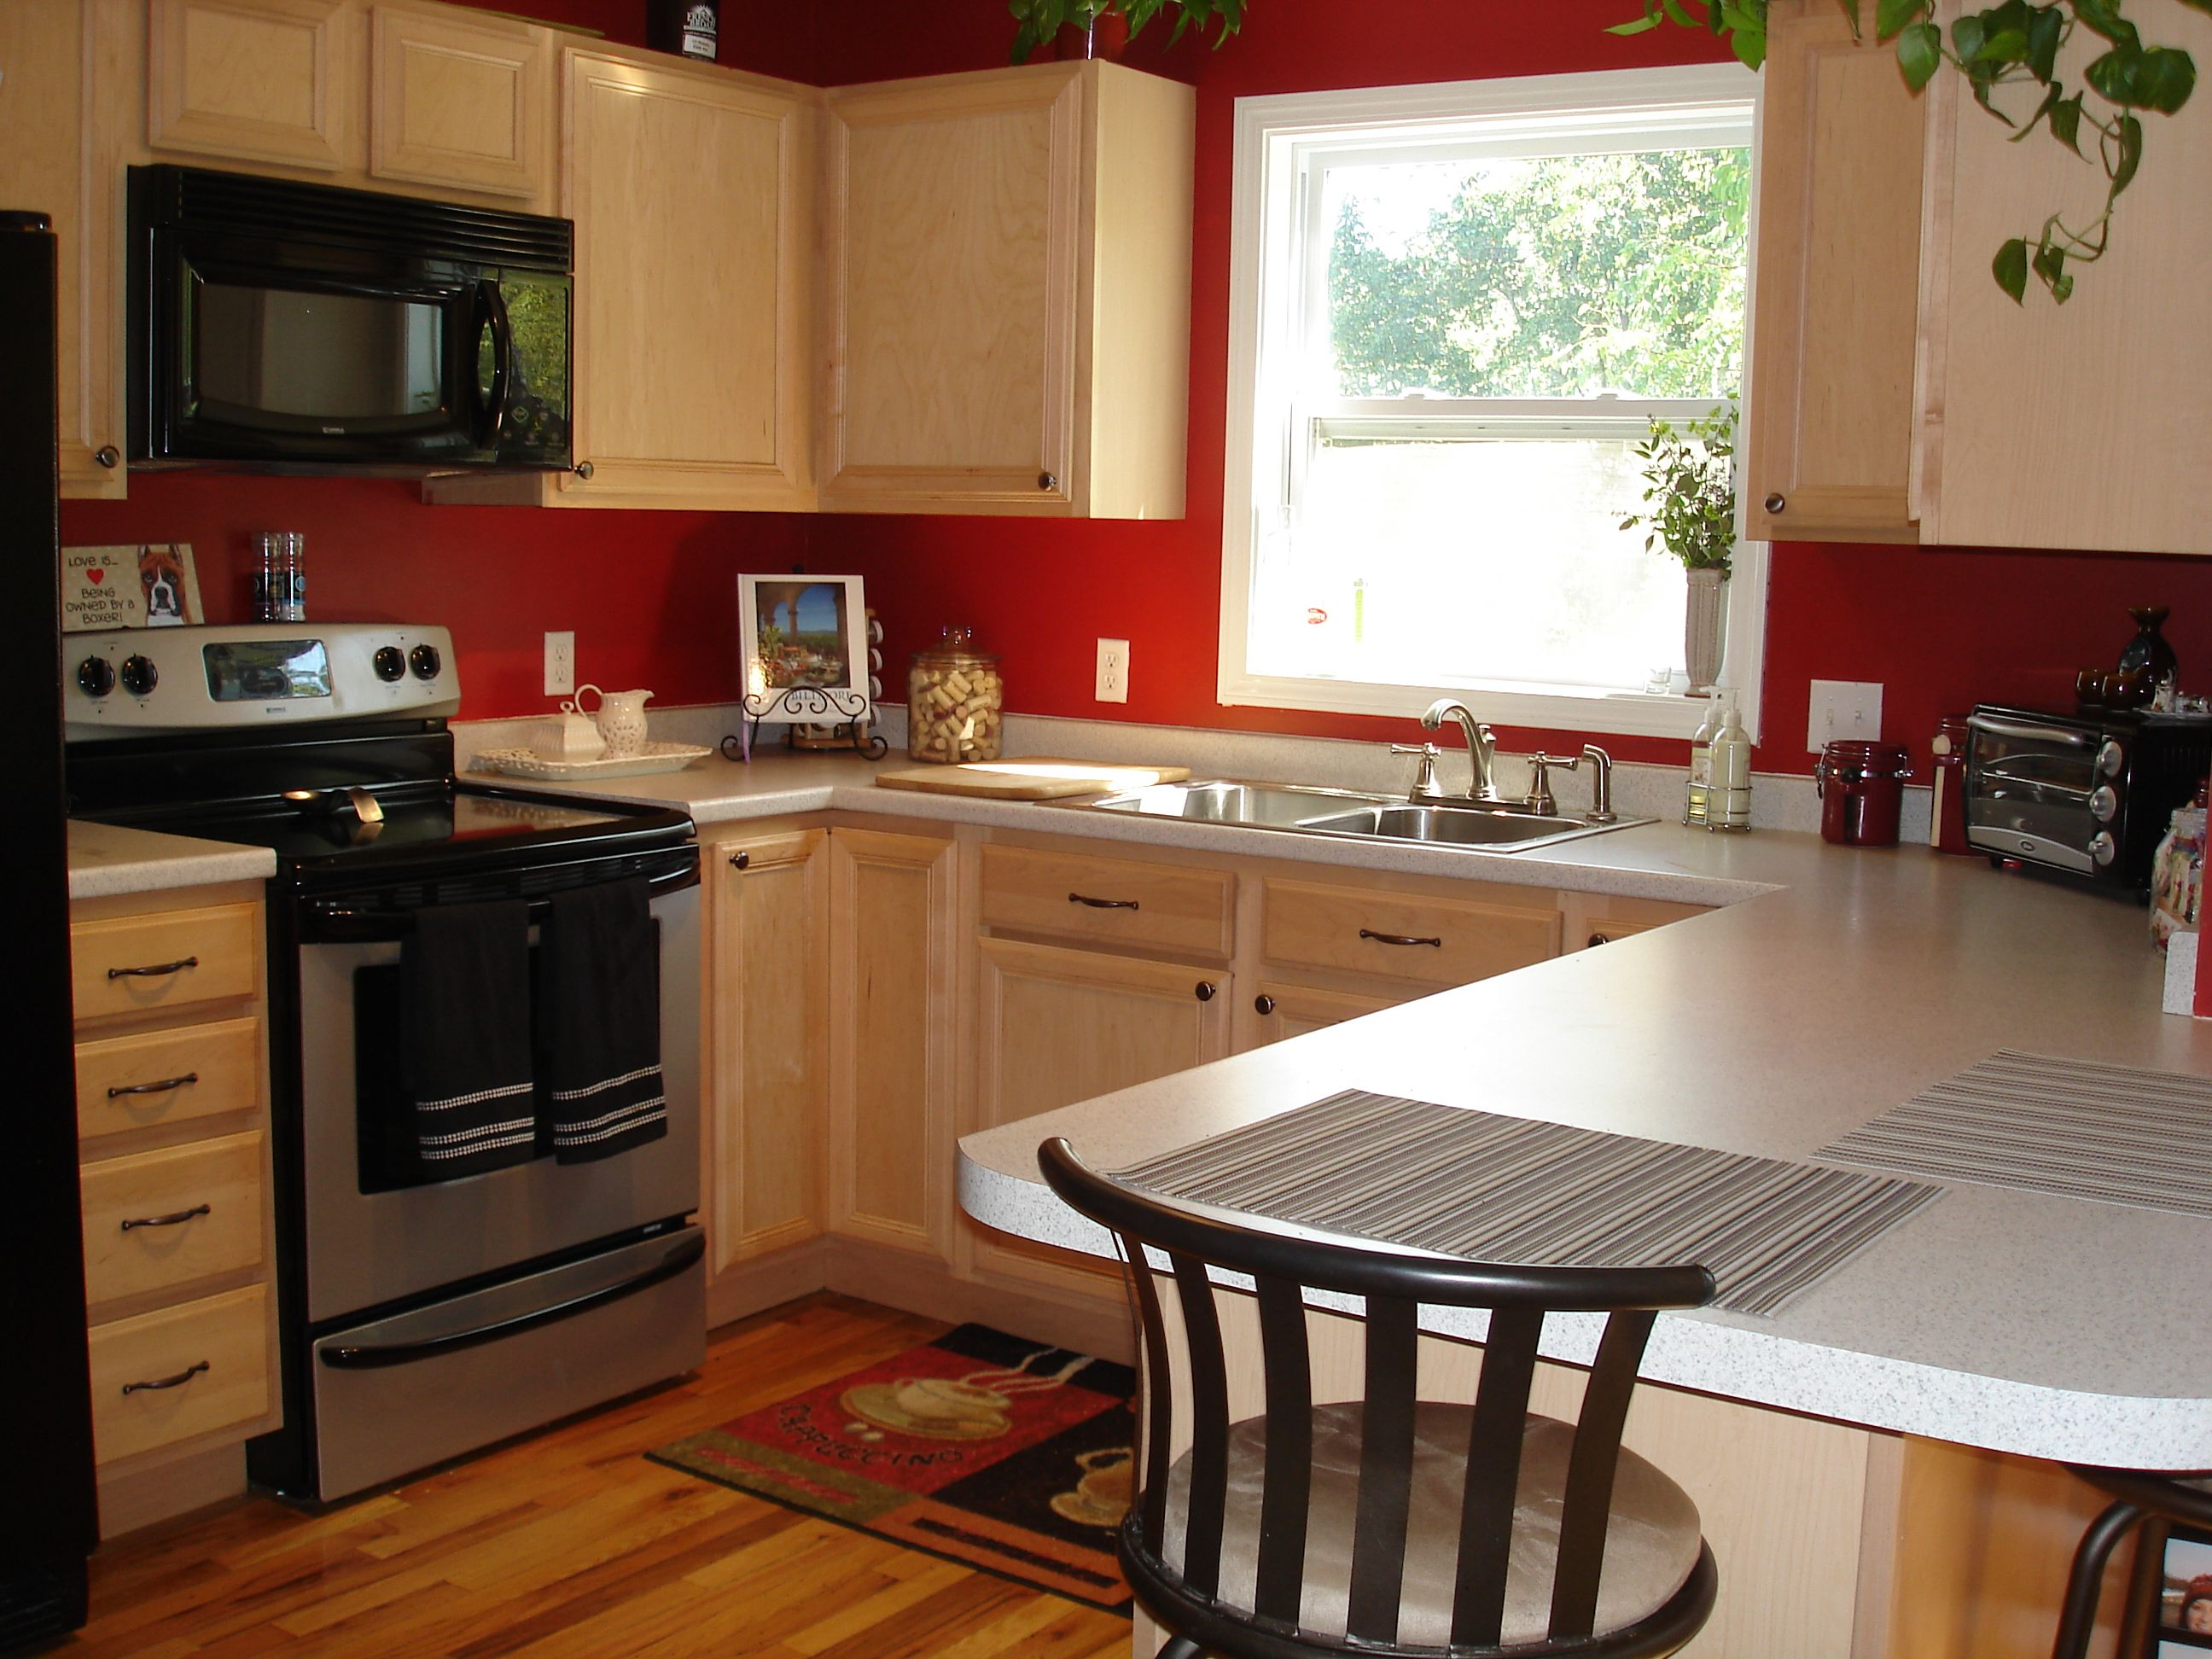 Diy Show Off Colored Cabinets Kitchens And Kitchen Colors